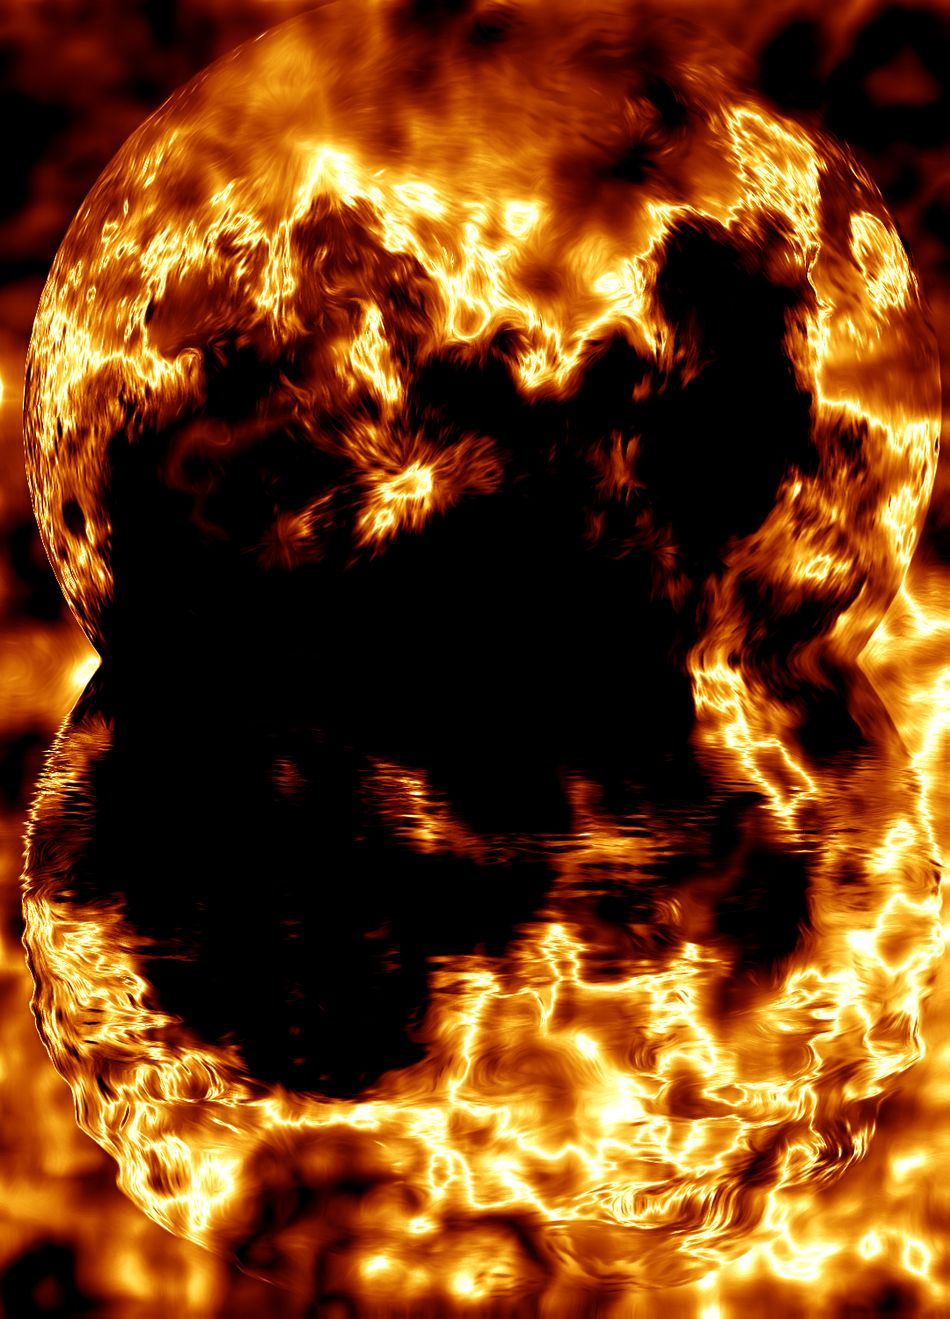 Fire Ball World On Fire Flames Burning Reflection_collection Special Effects